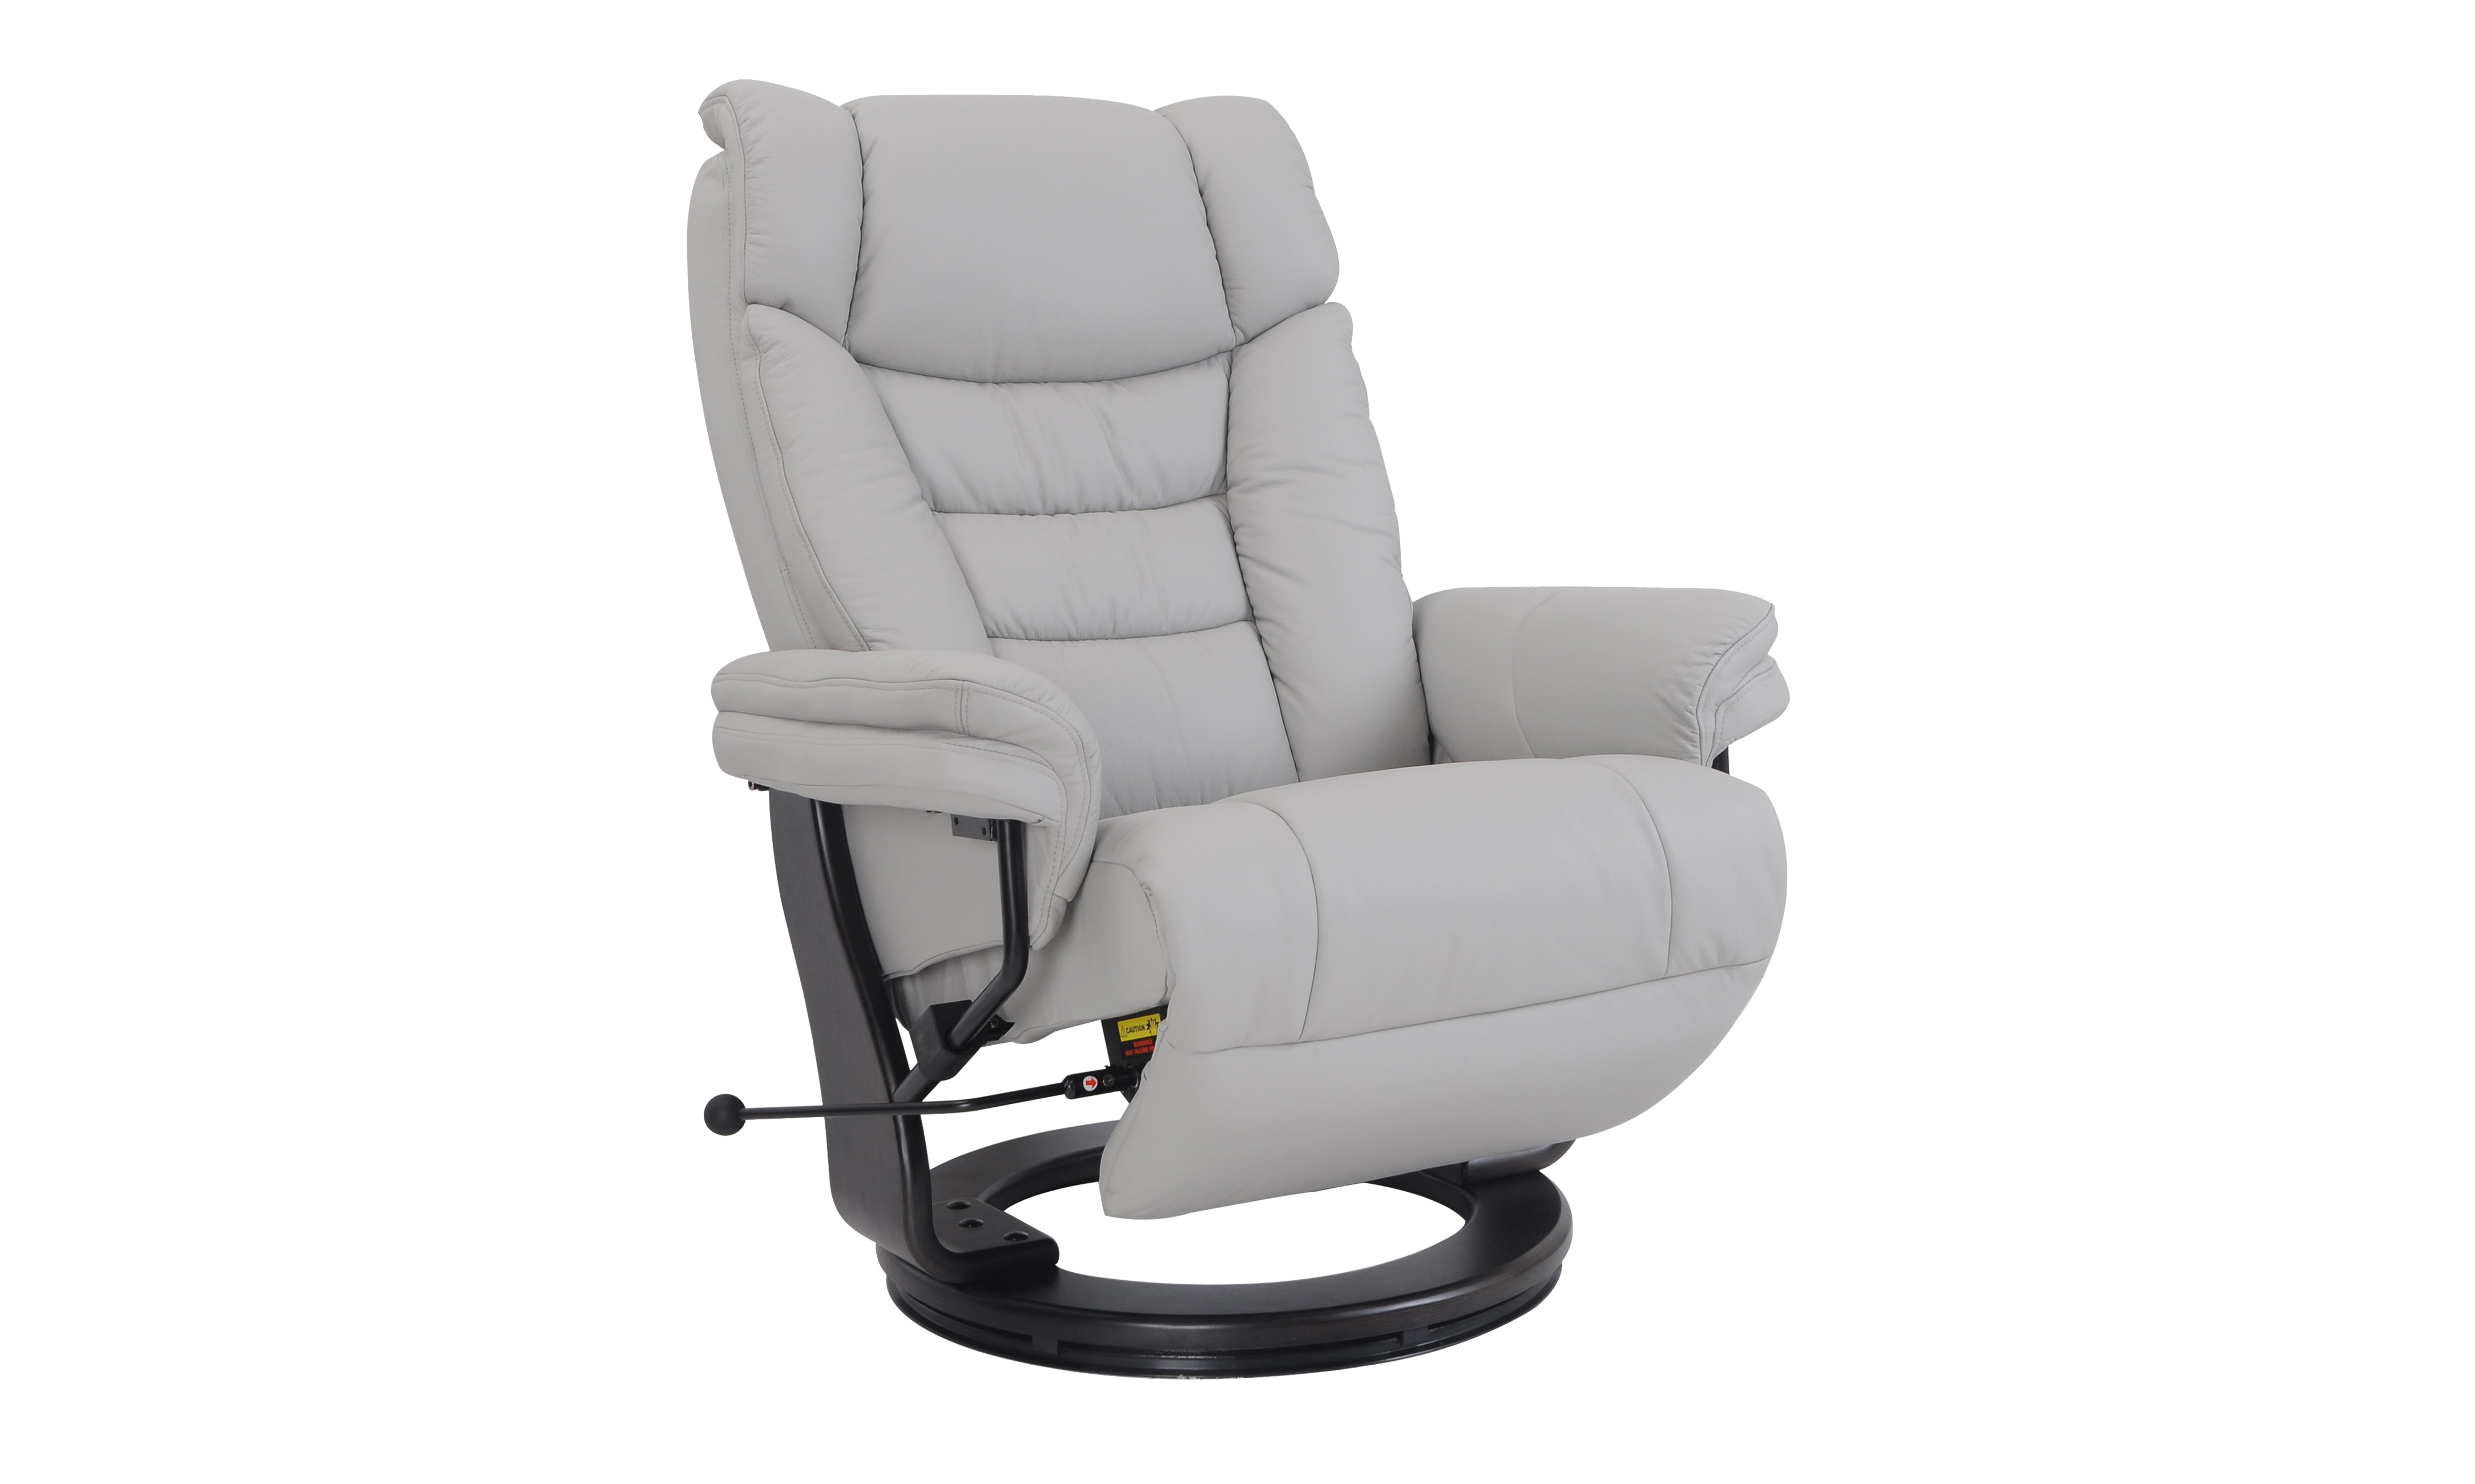 Outstanding Furniture Solutions Sven Recliner With Integrated Footrest Ibusinesslaw Wood Chair Design Ideas Ibusinesslaworg